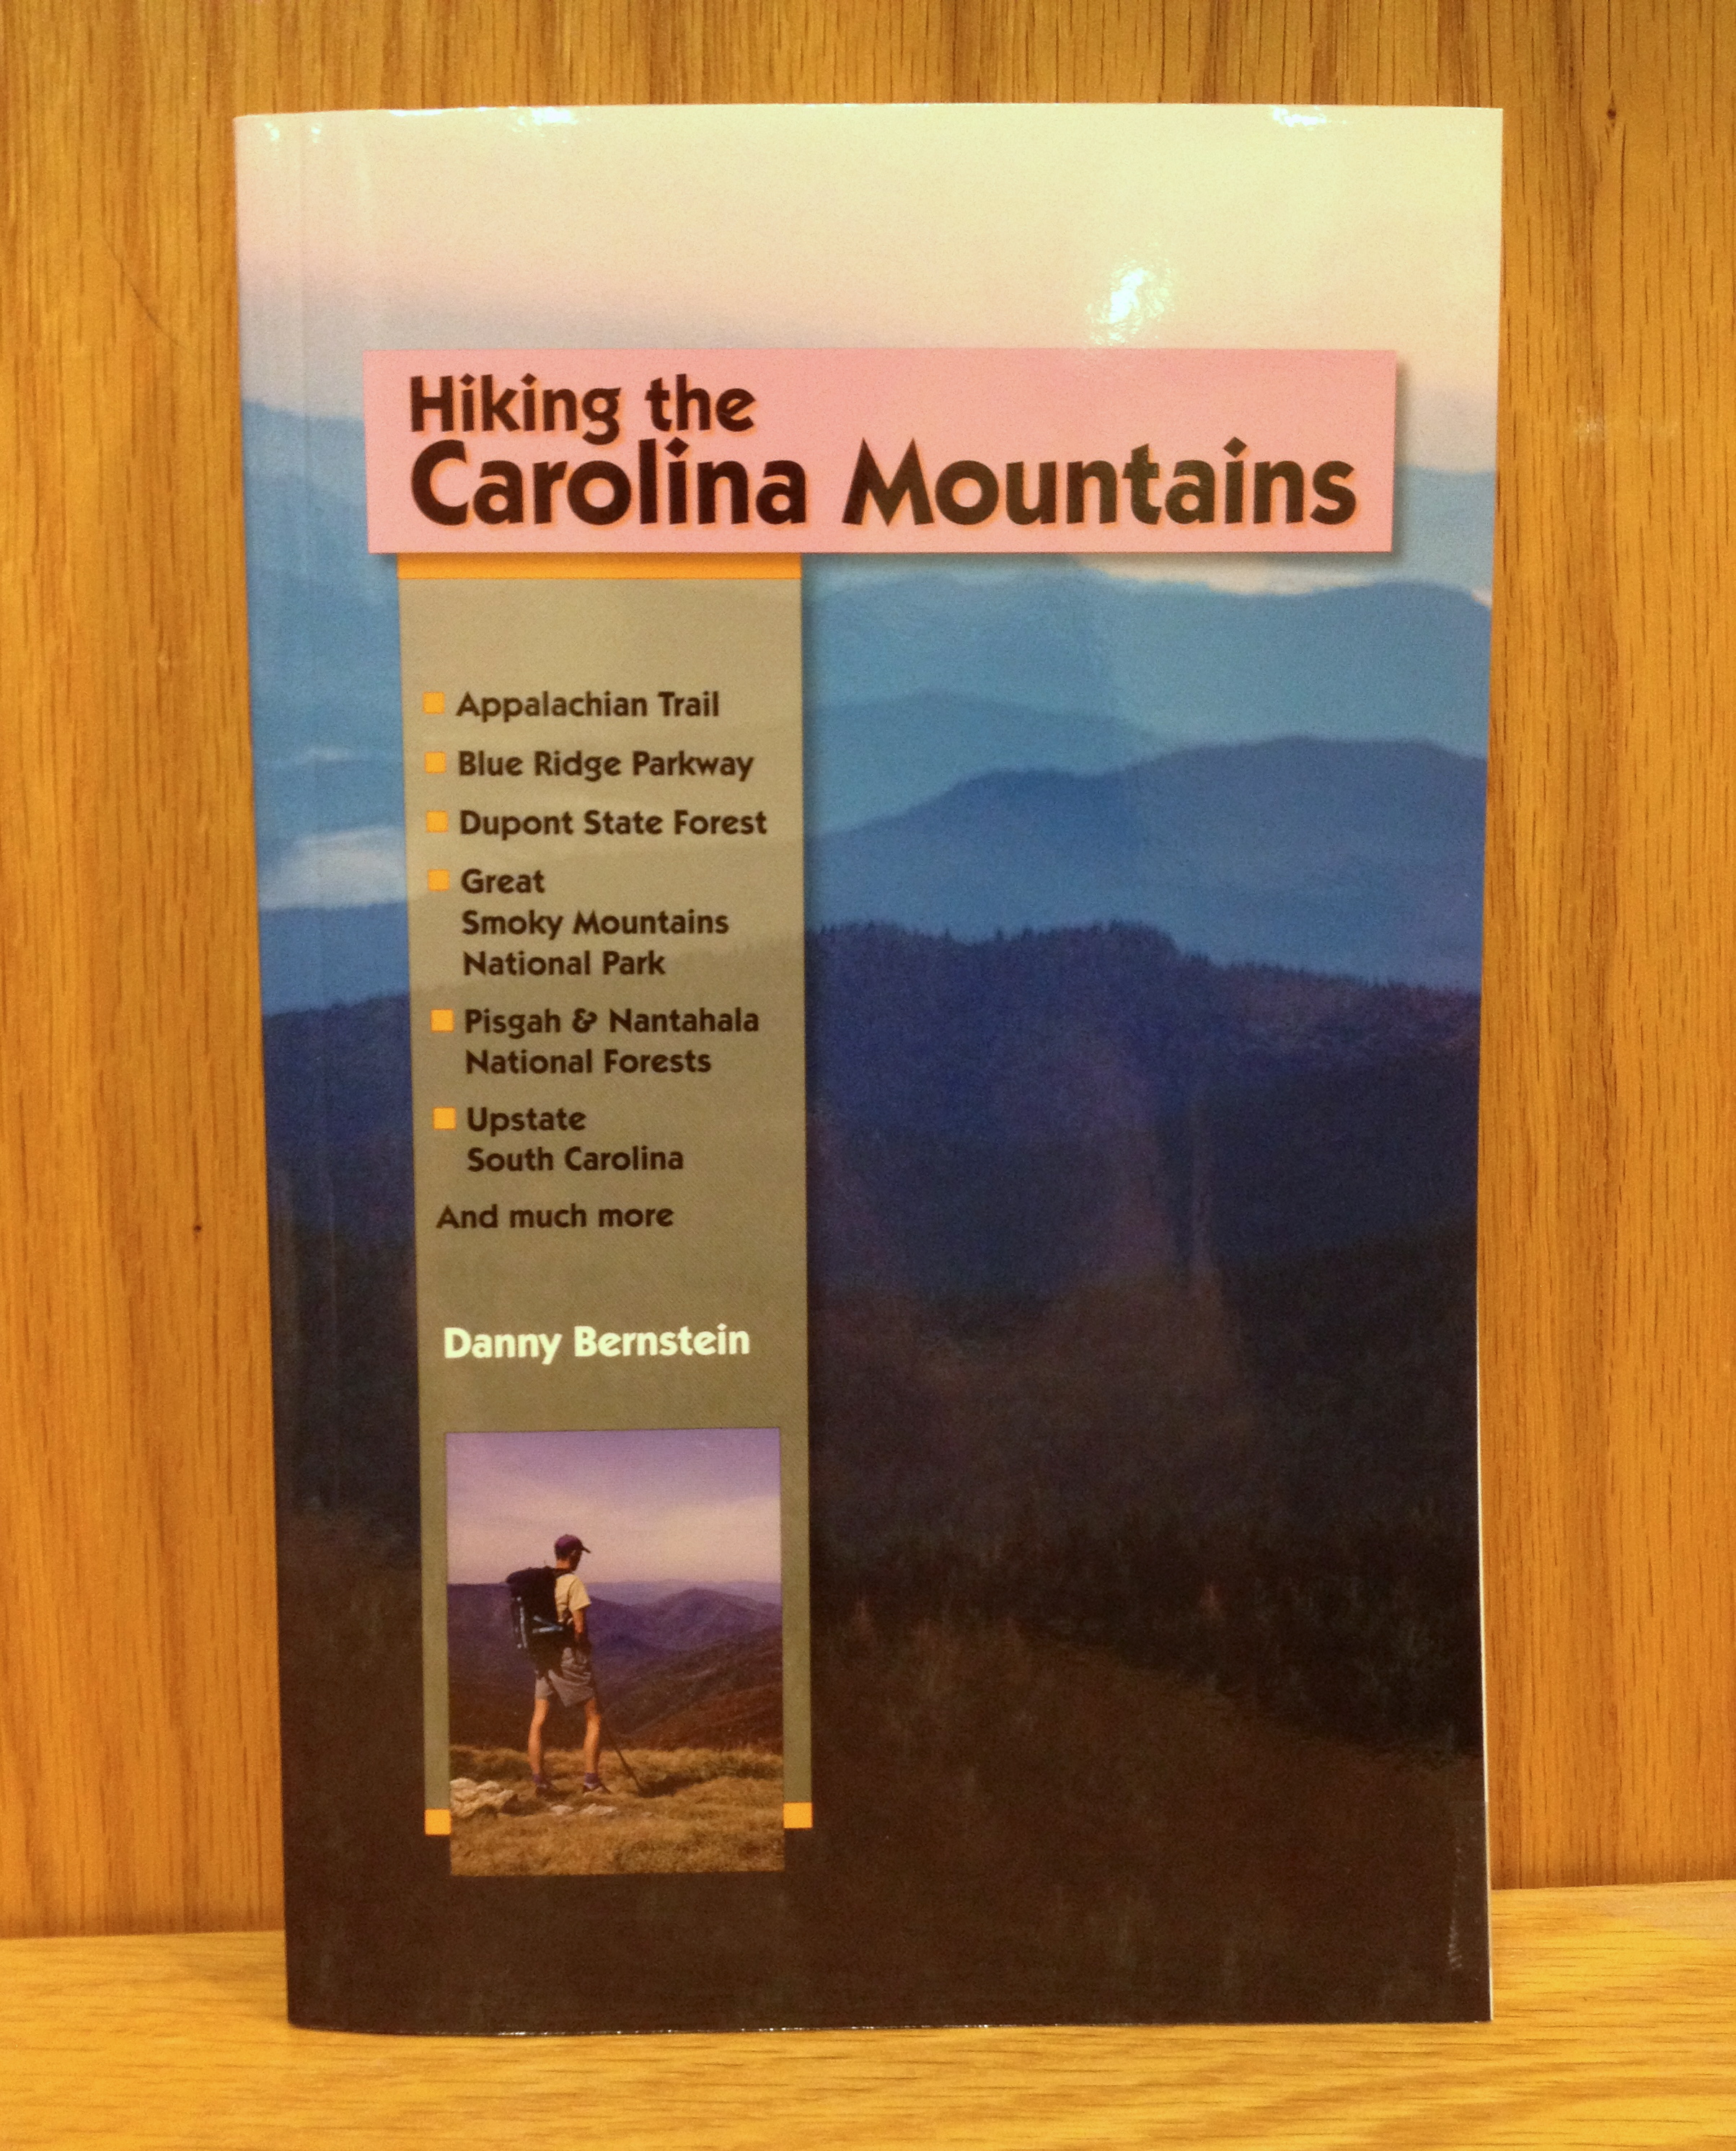 Hiking the Carolina Mountains by Danny Bernstein